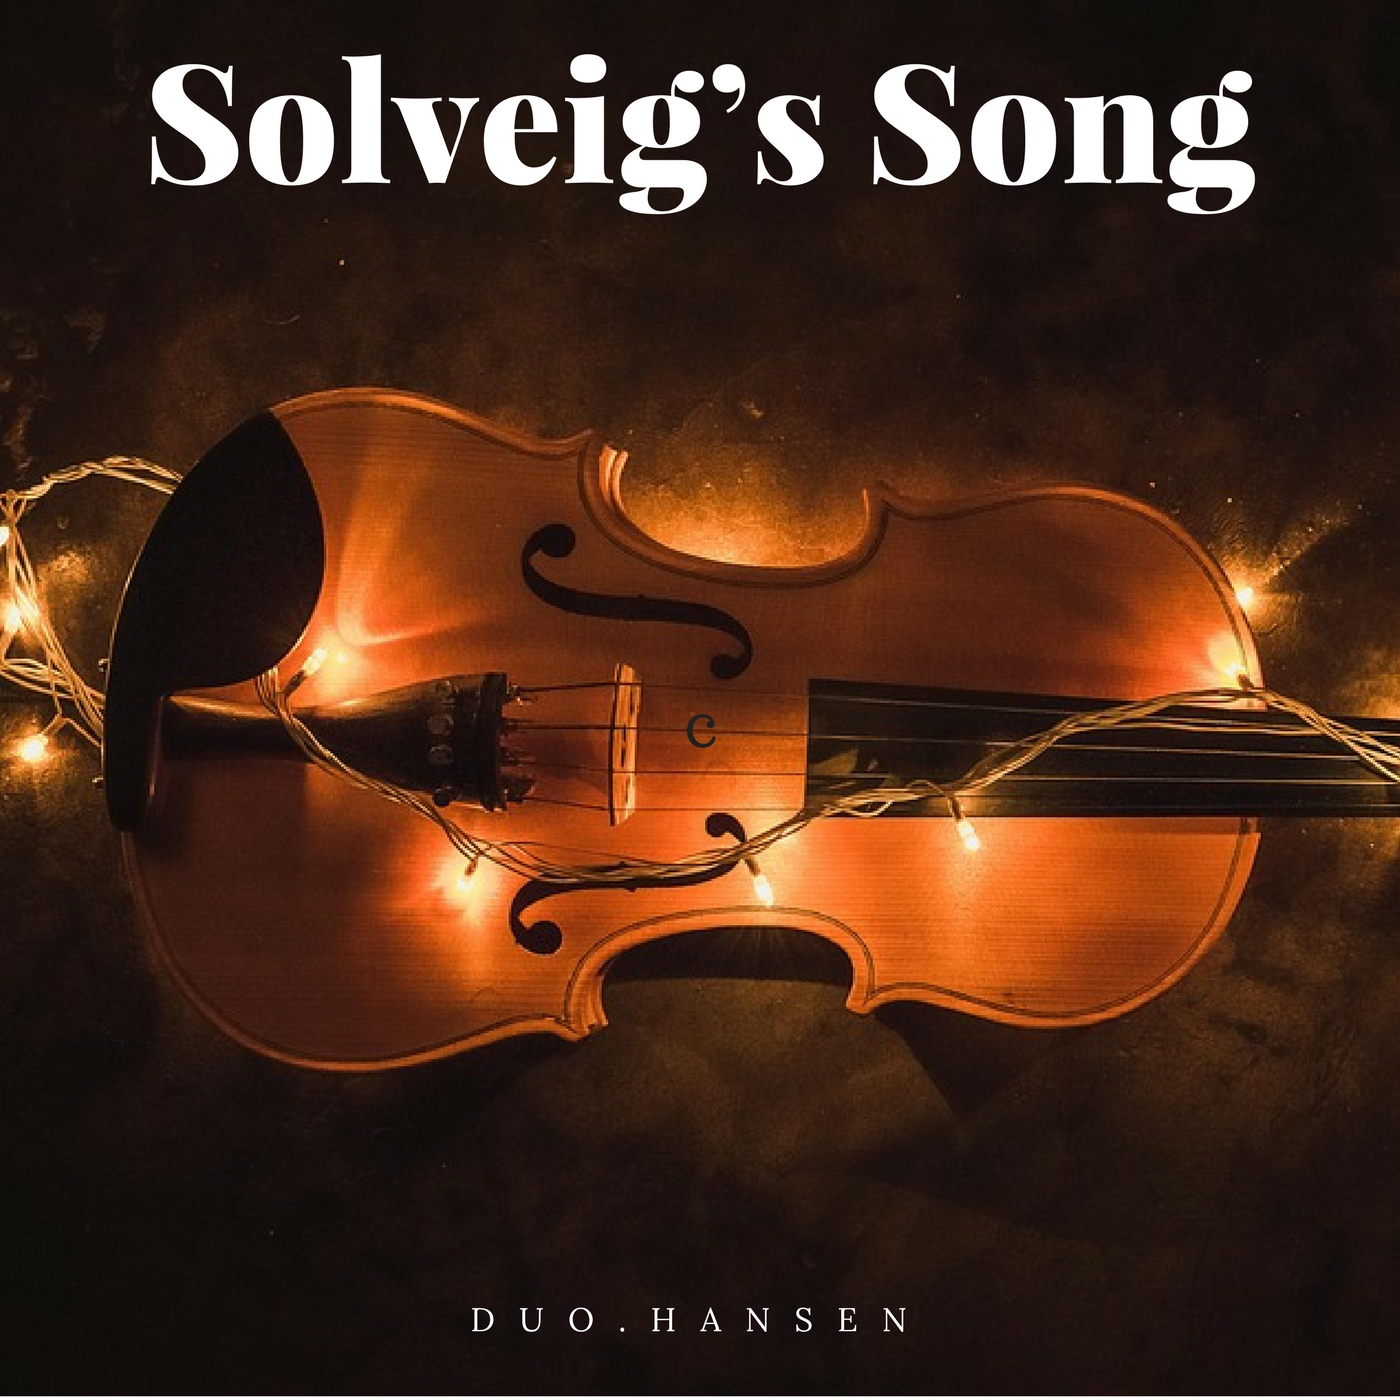 Grieg: Solveig's Song